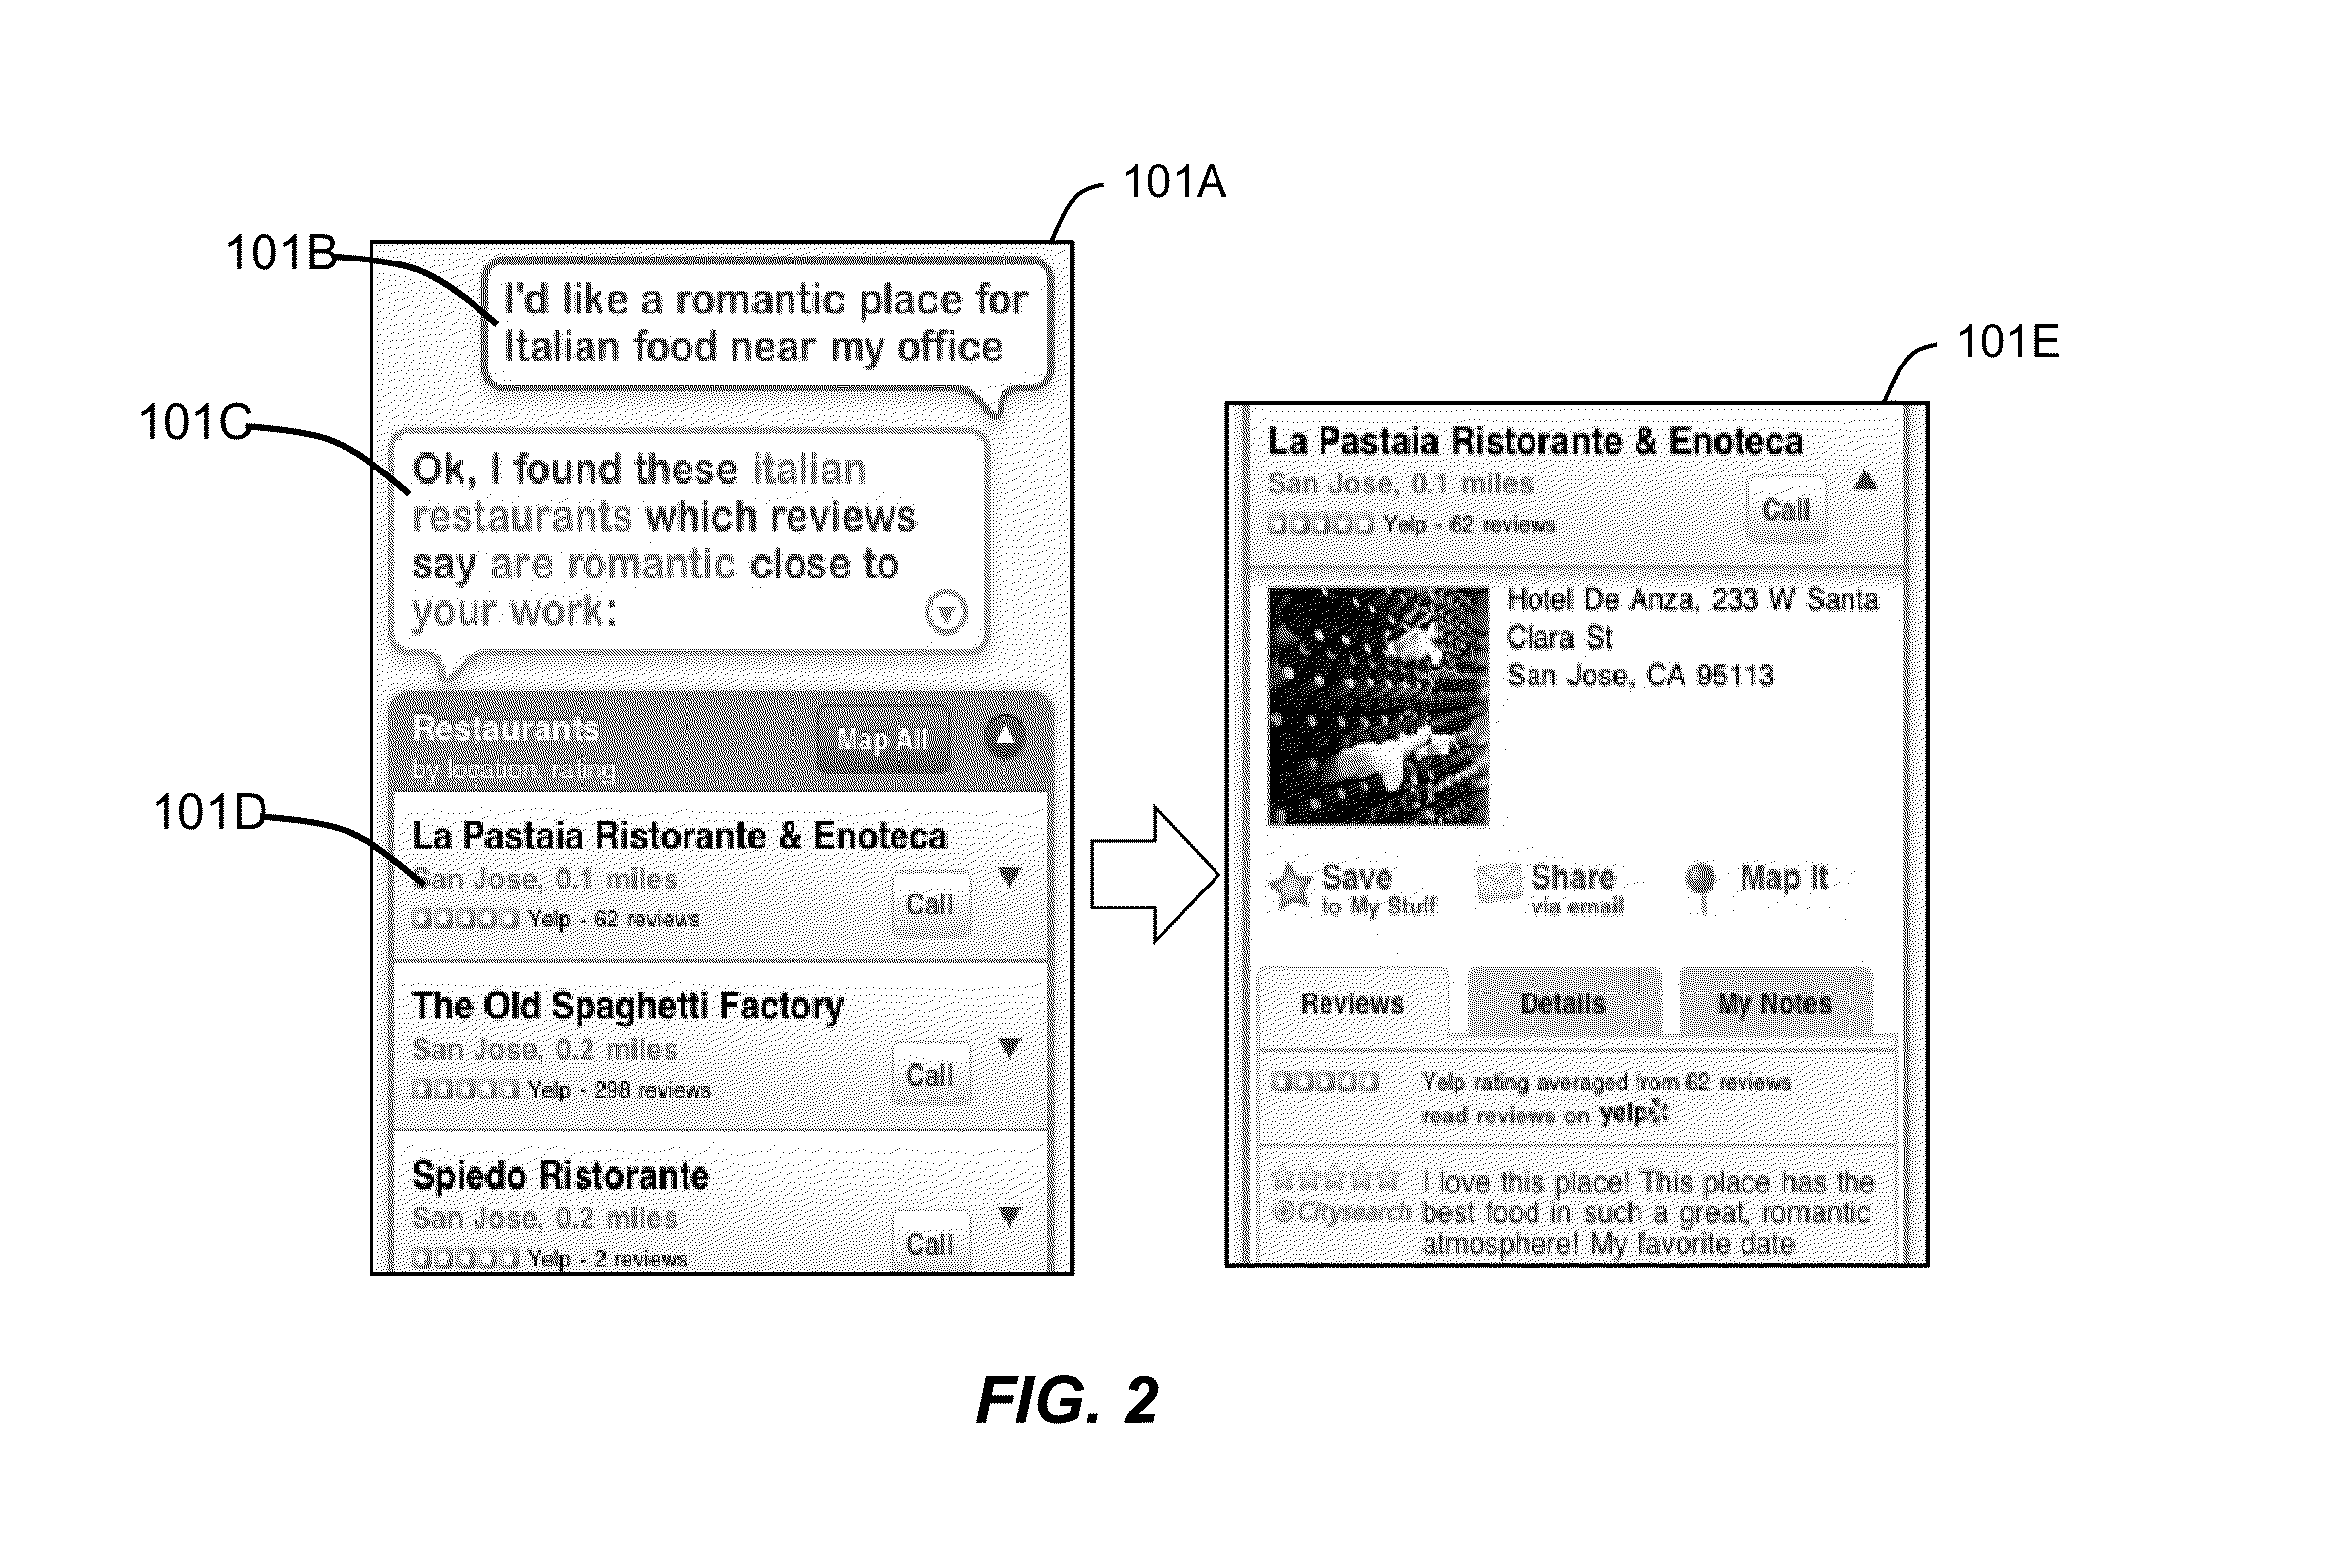 Us8731942b2 maintaining context information between user us8731942b2 maintaining context information between user interactions with a voice assistant google patents fandeluxe Image collections